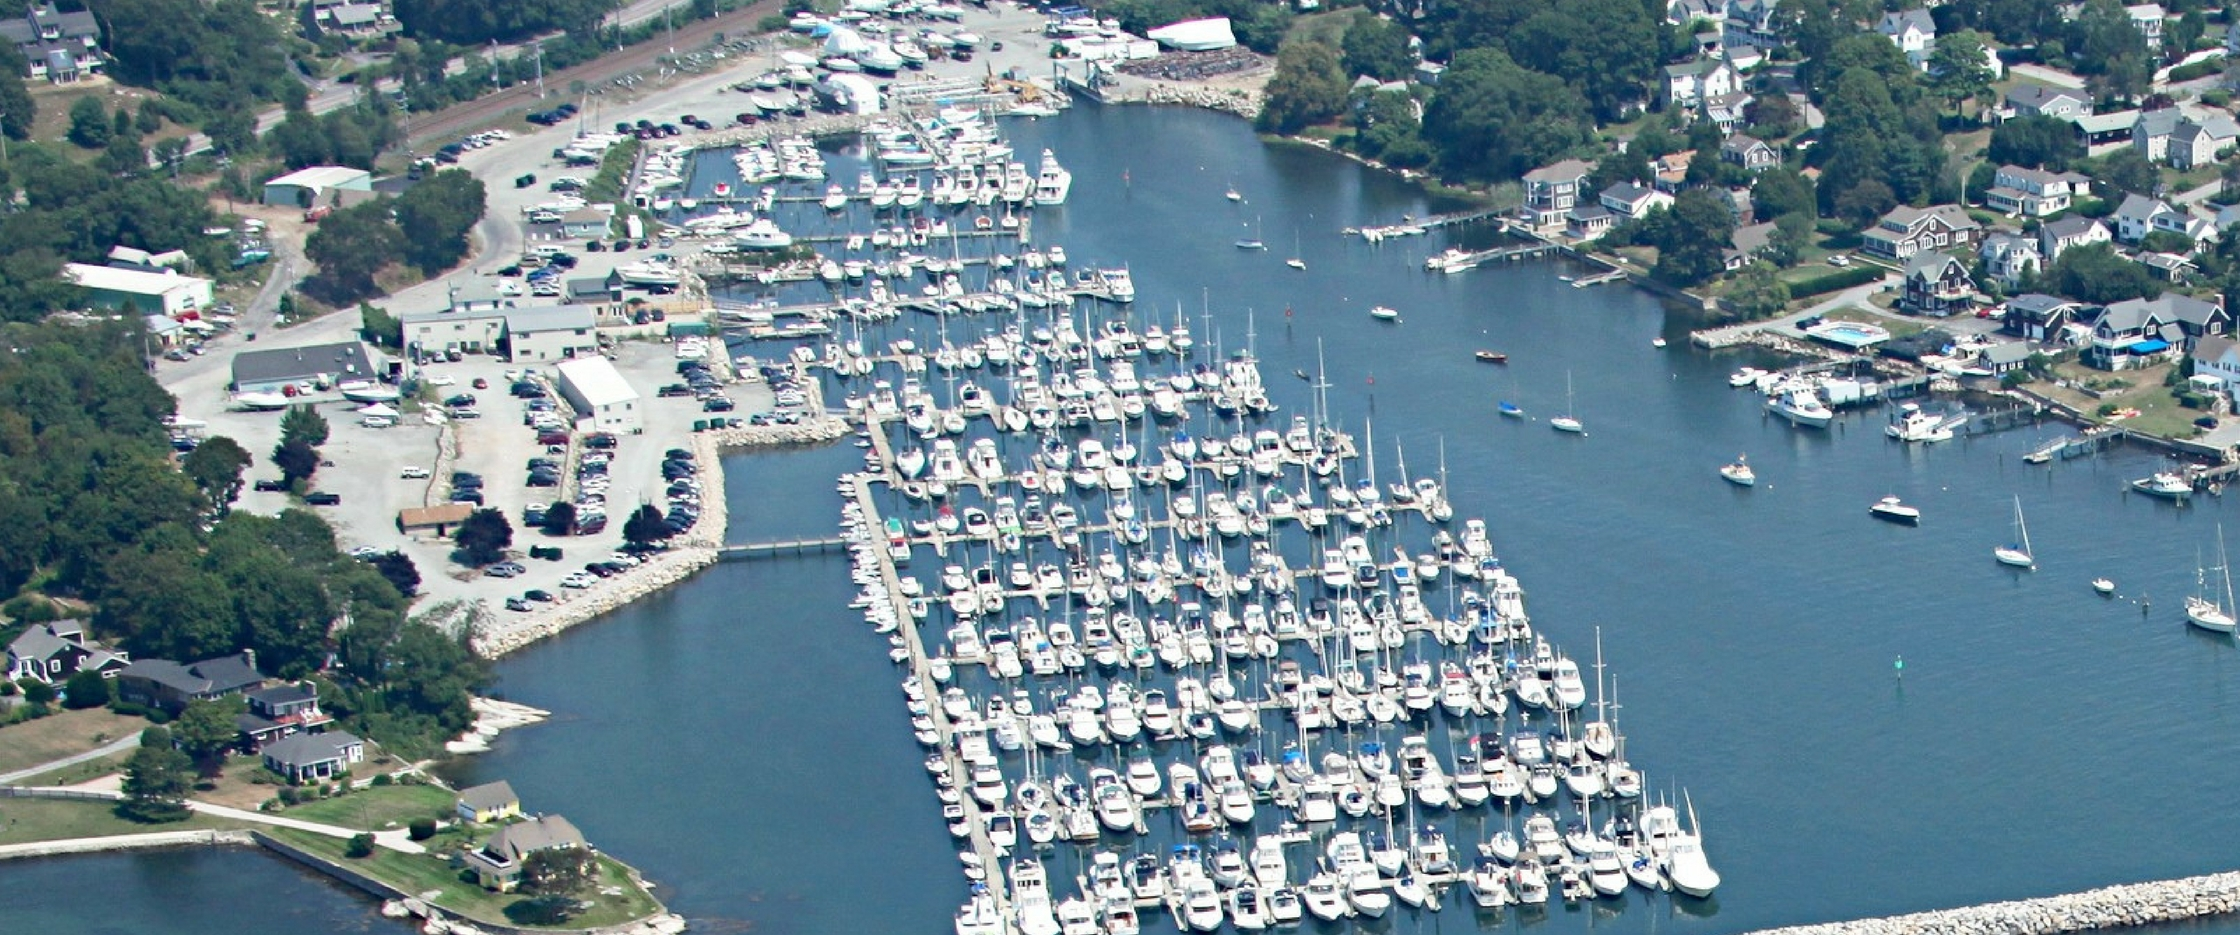 Spicers Brokerage Aerial Picture